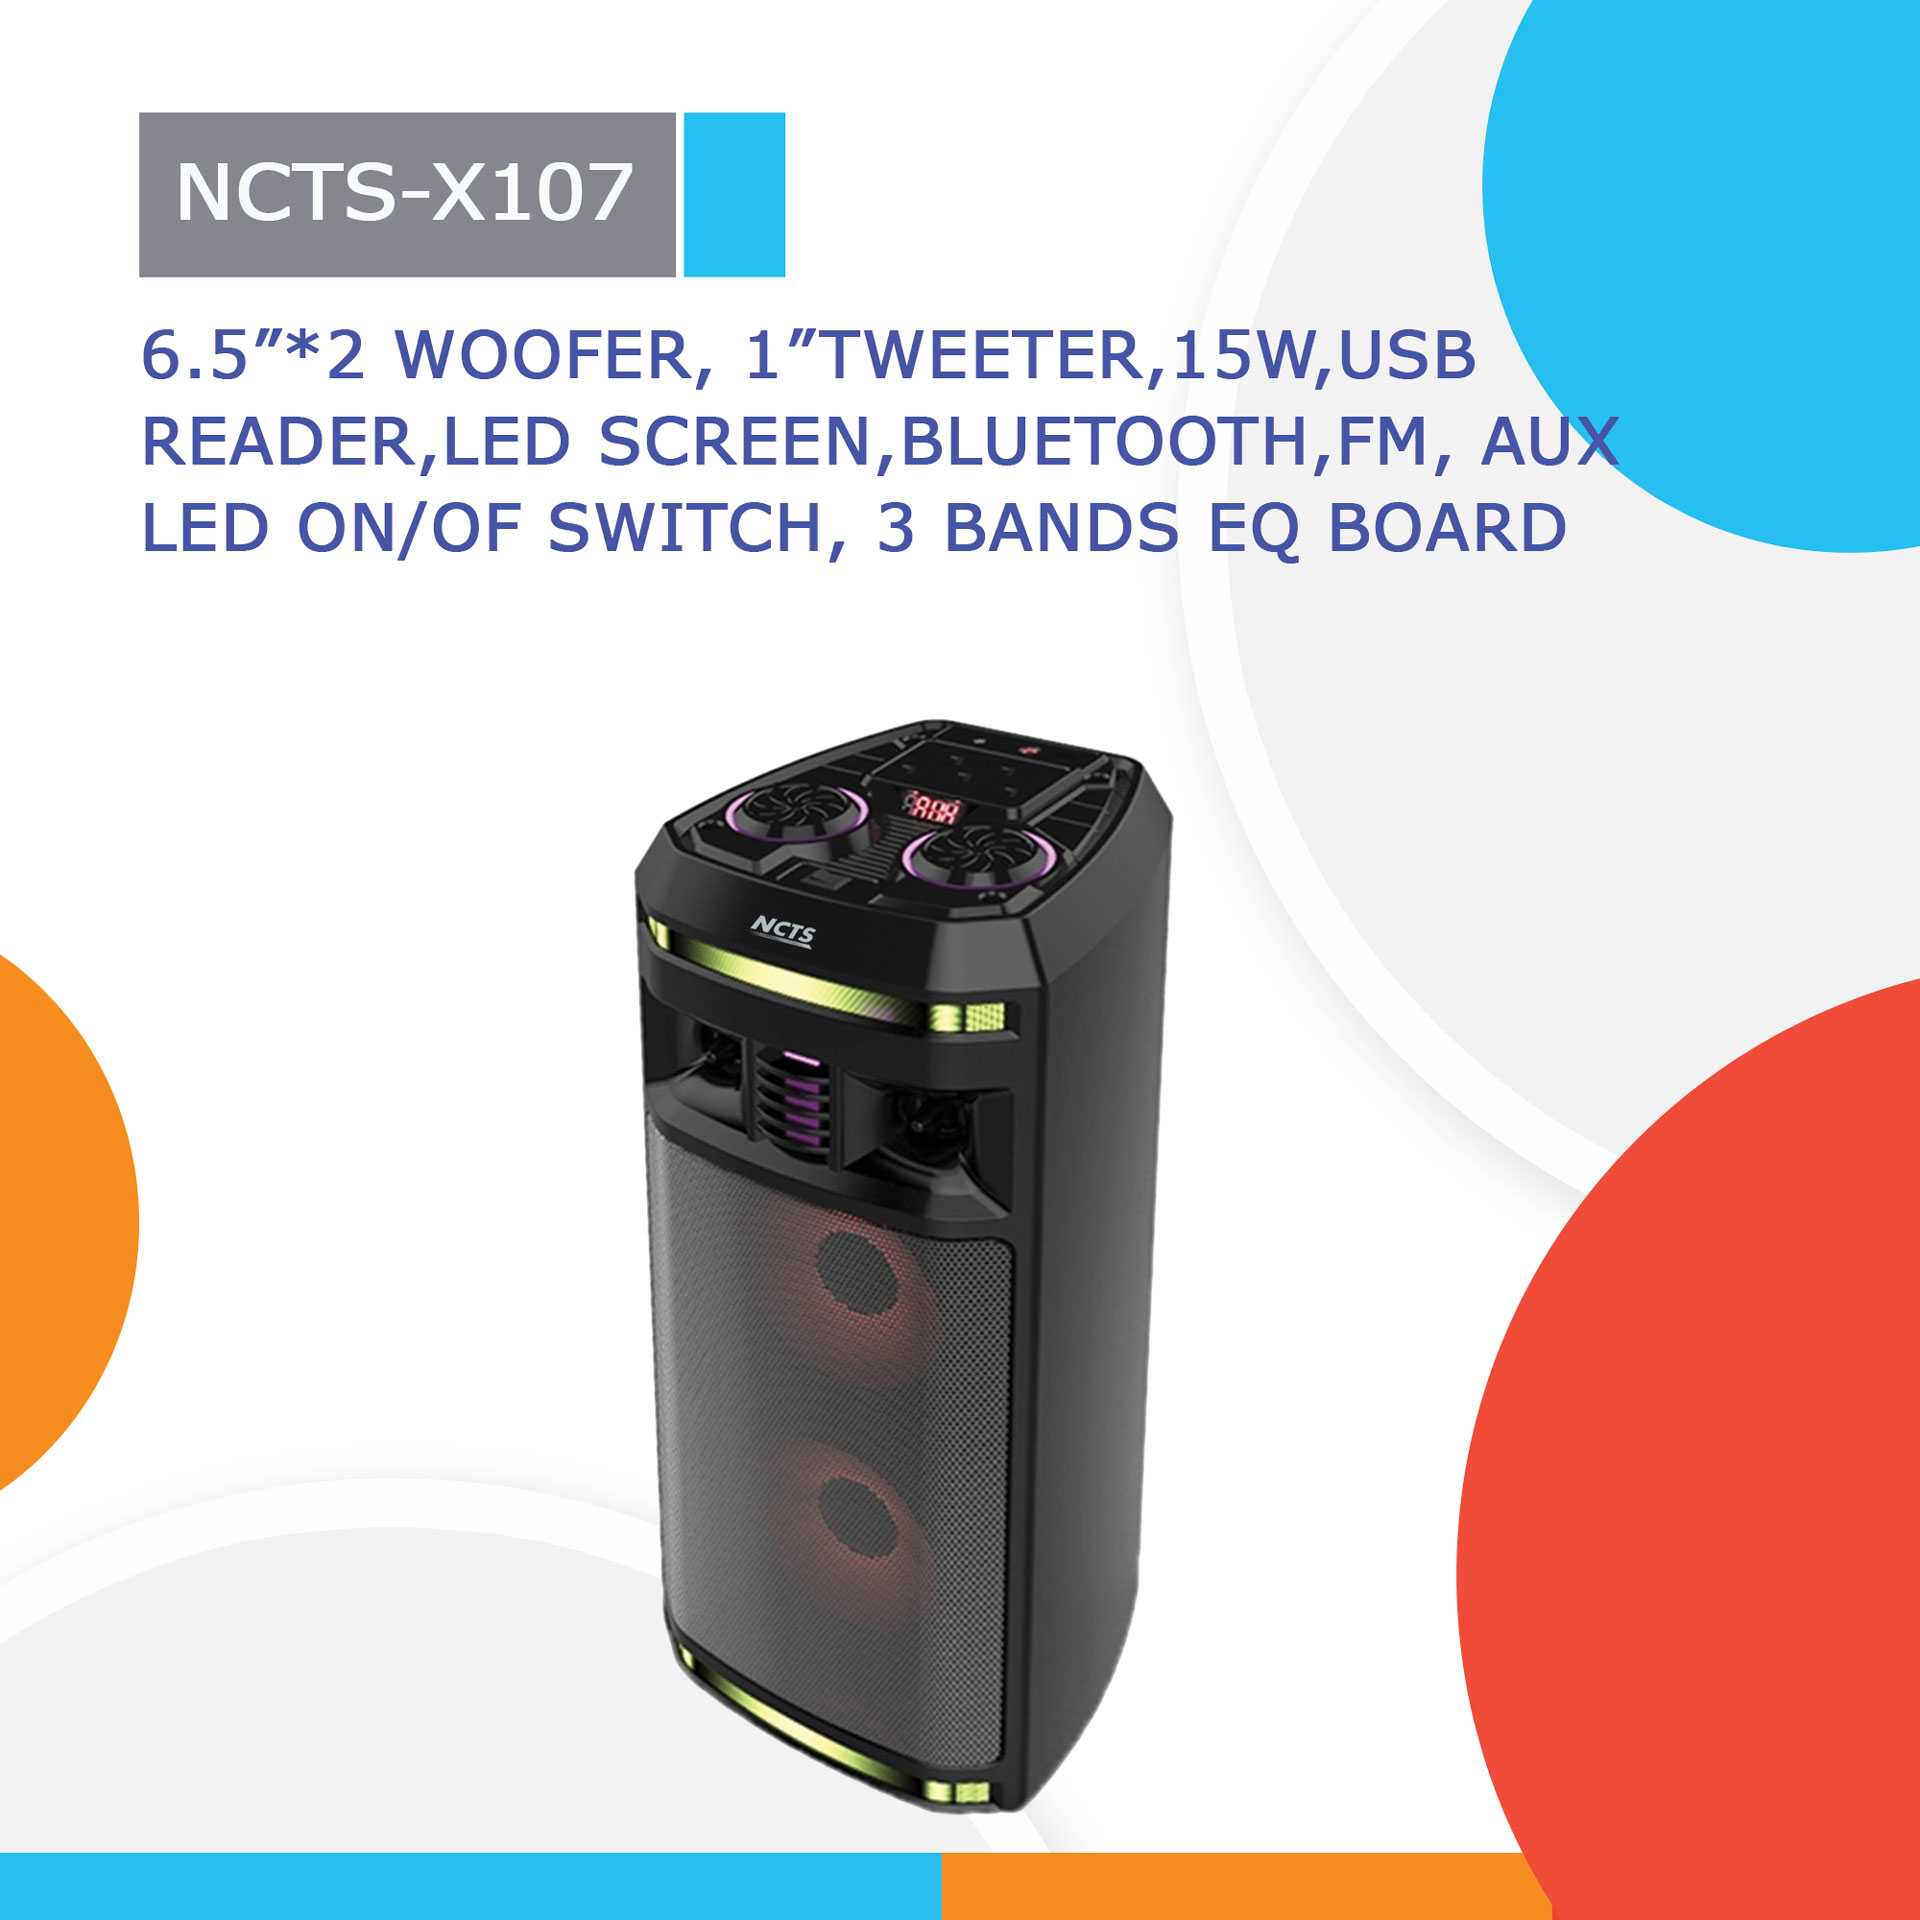 NCTS-X107